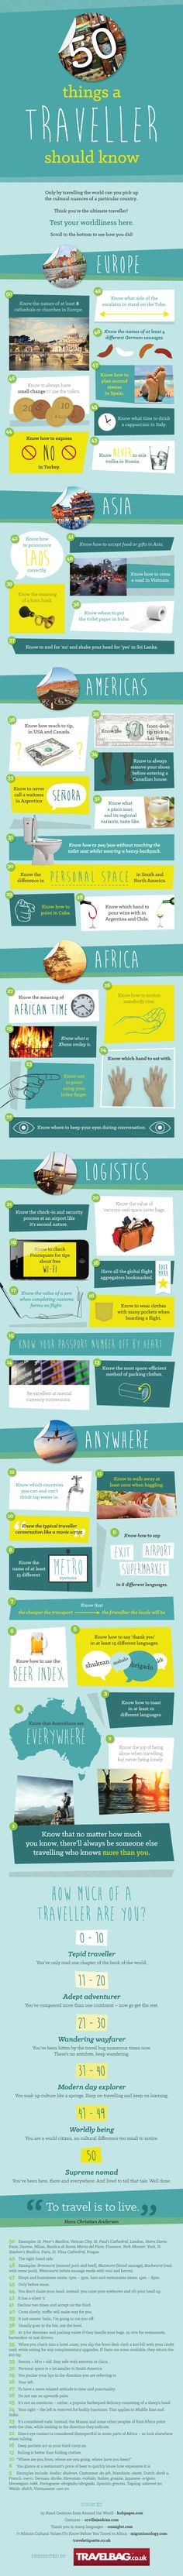 50 Things a Traveller Should Know [by Travelbag -- via #tipsographic]. More at tipsographic.com